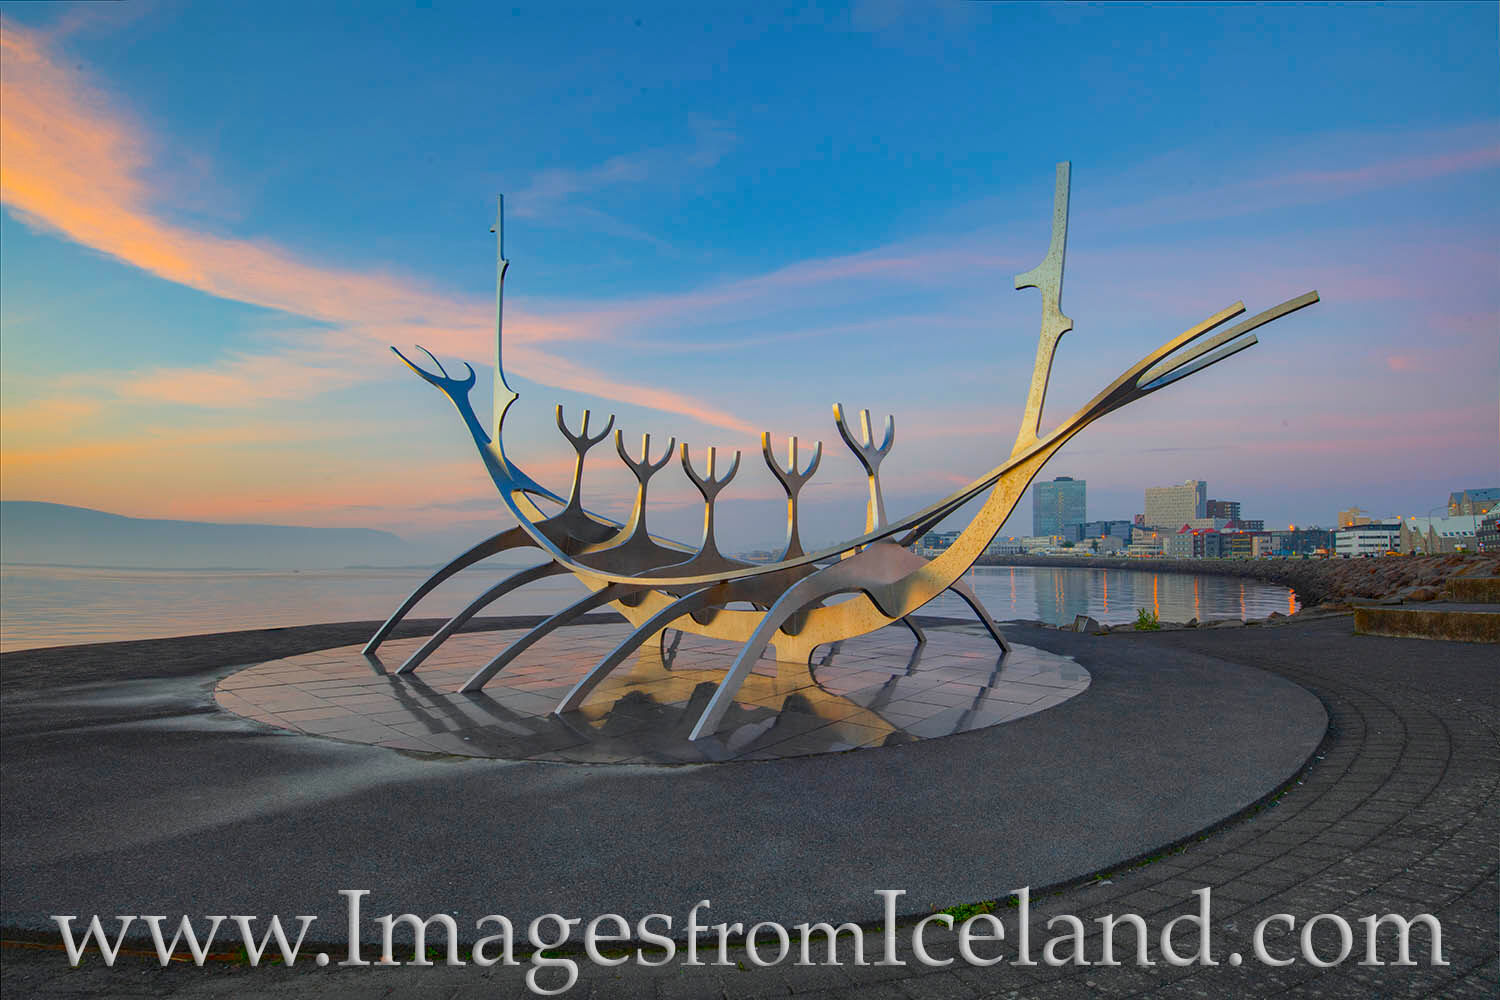 The Sun Voyager, a sculpture by Jón Gunnar Árnason, looks out to the bay and inspires hope of undiscovered lands. In the distance...